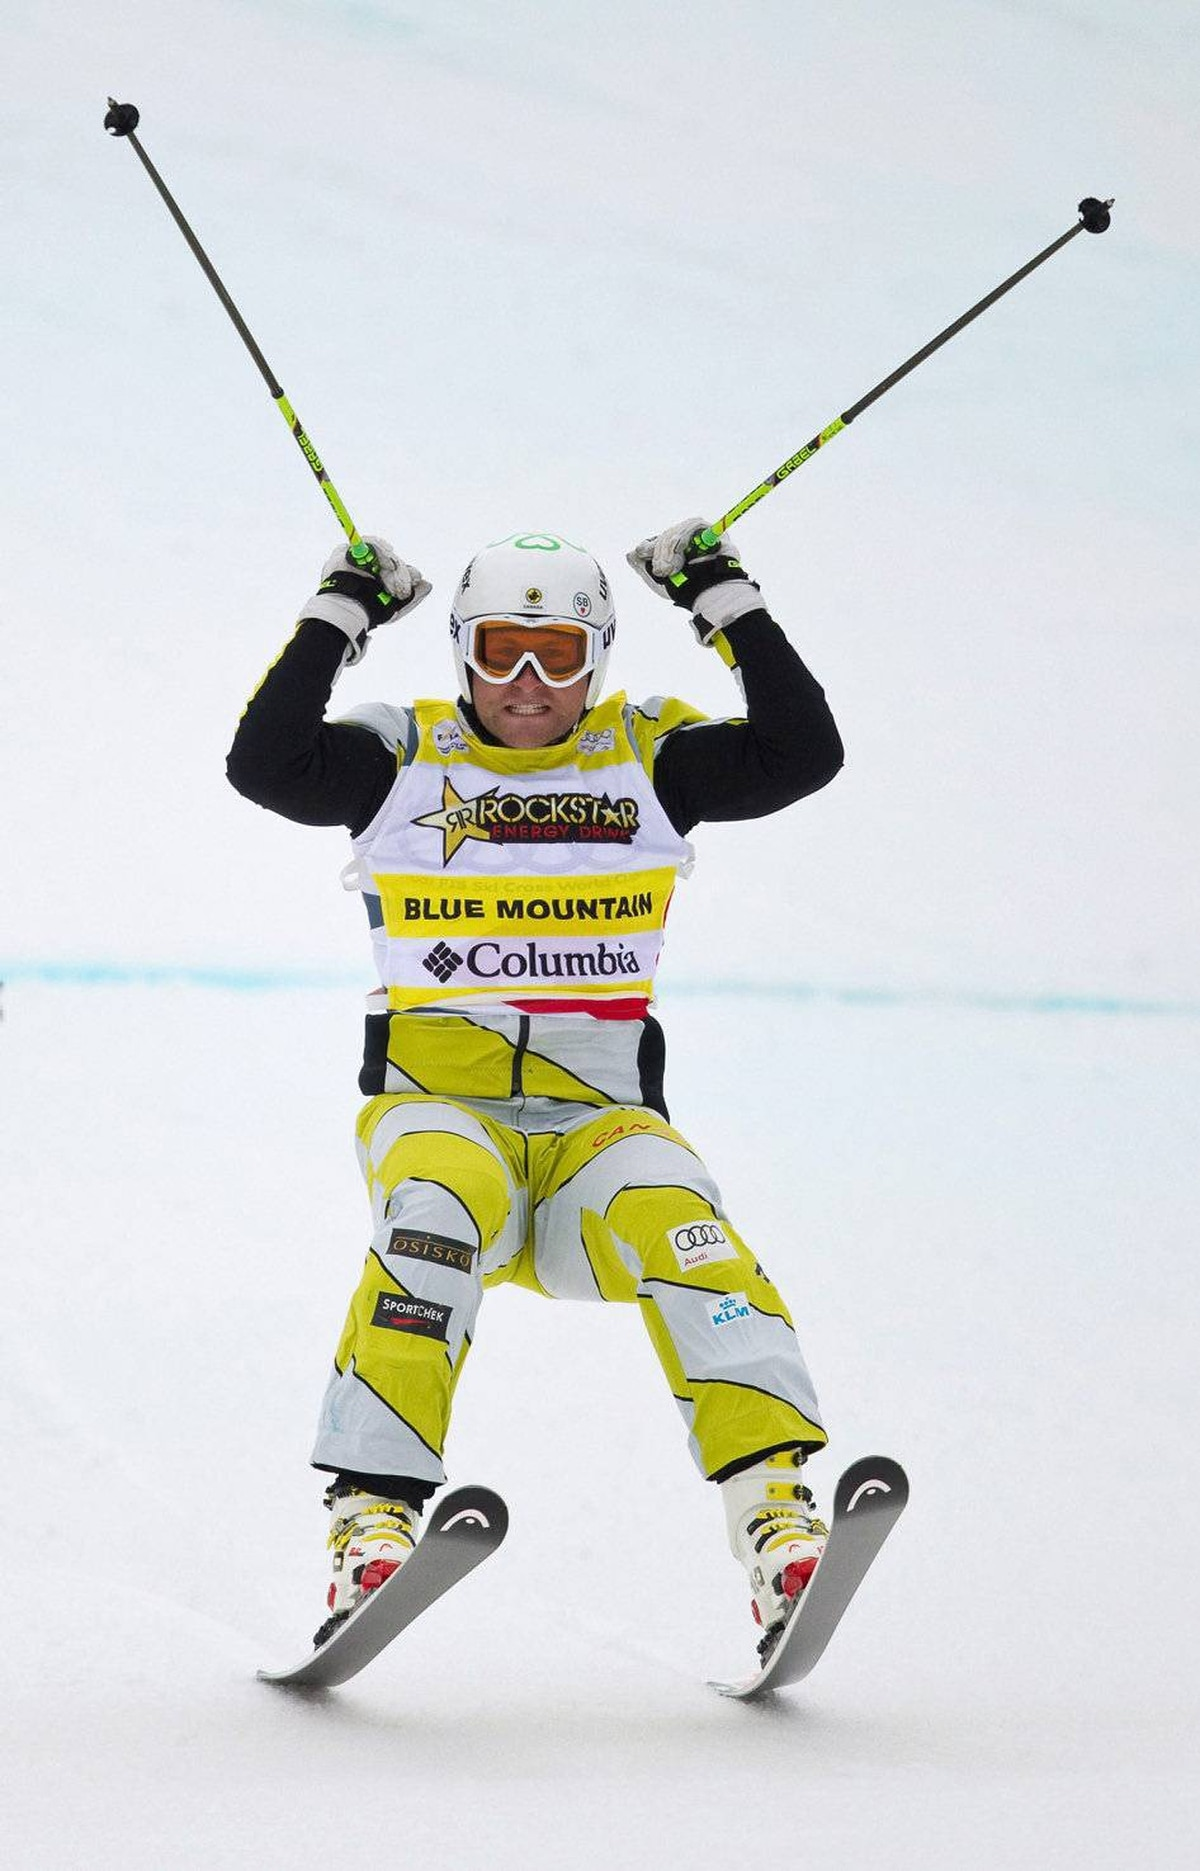 Brady Leman of Canada celebrates his win at the FIS Ski Cross World Cup race at Blue Mountain in Collingwood, Ontario February 3, 2012.